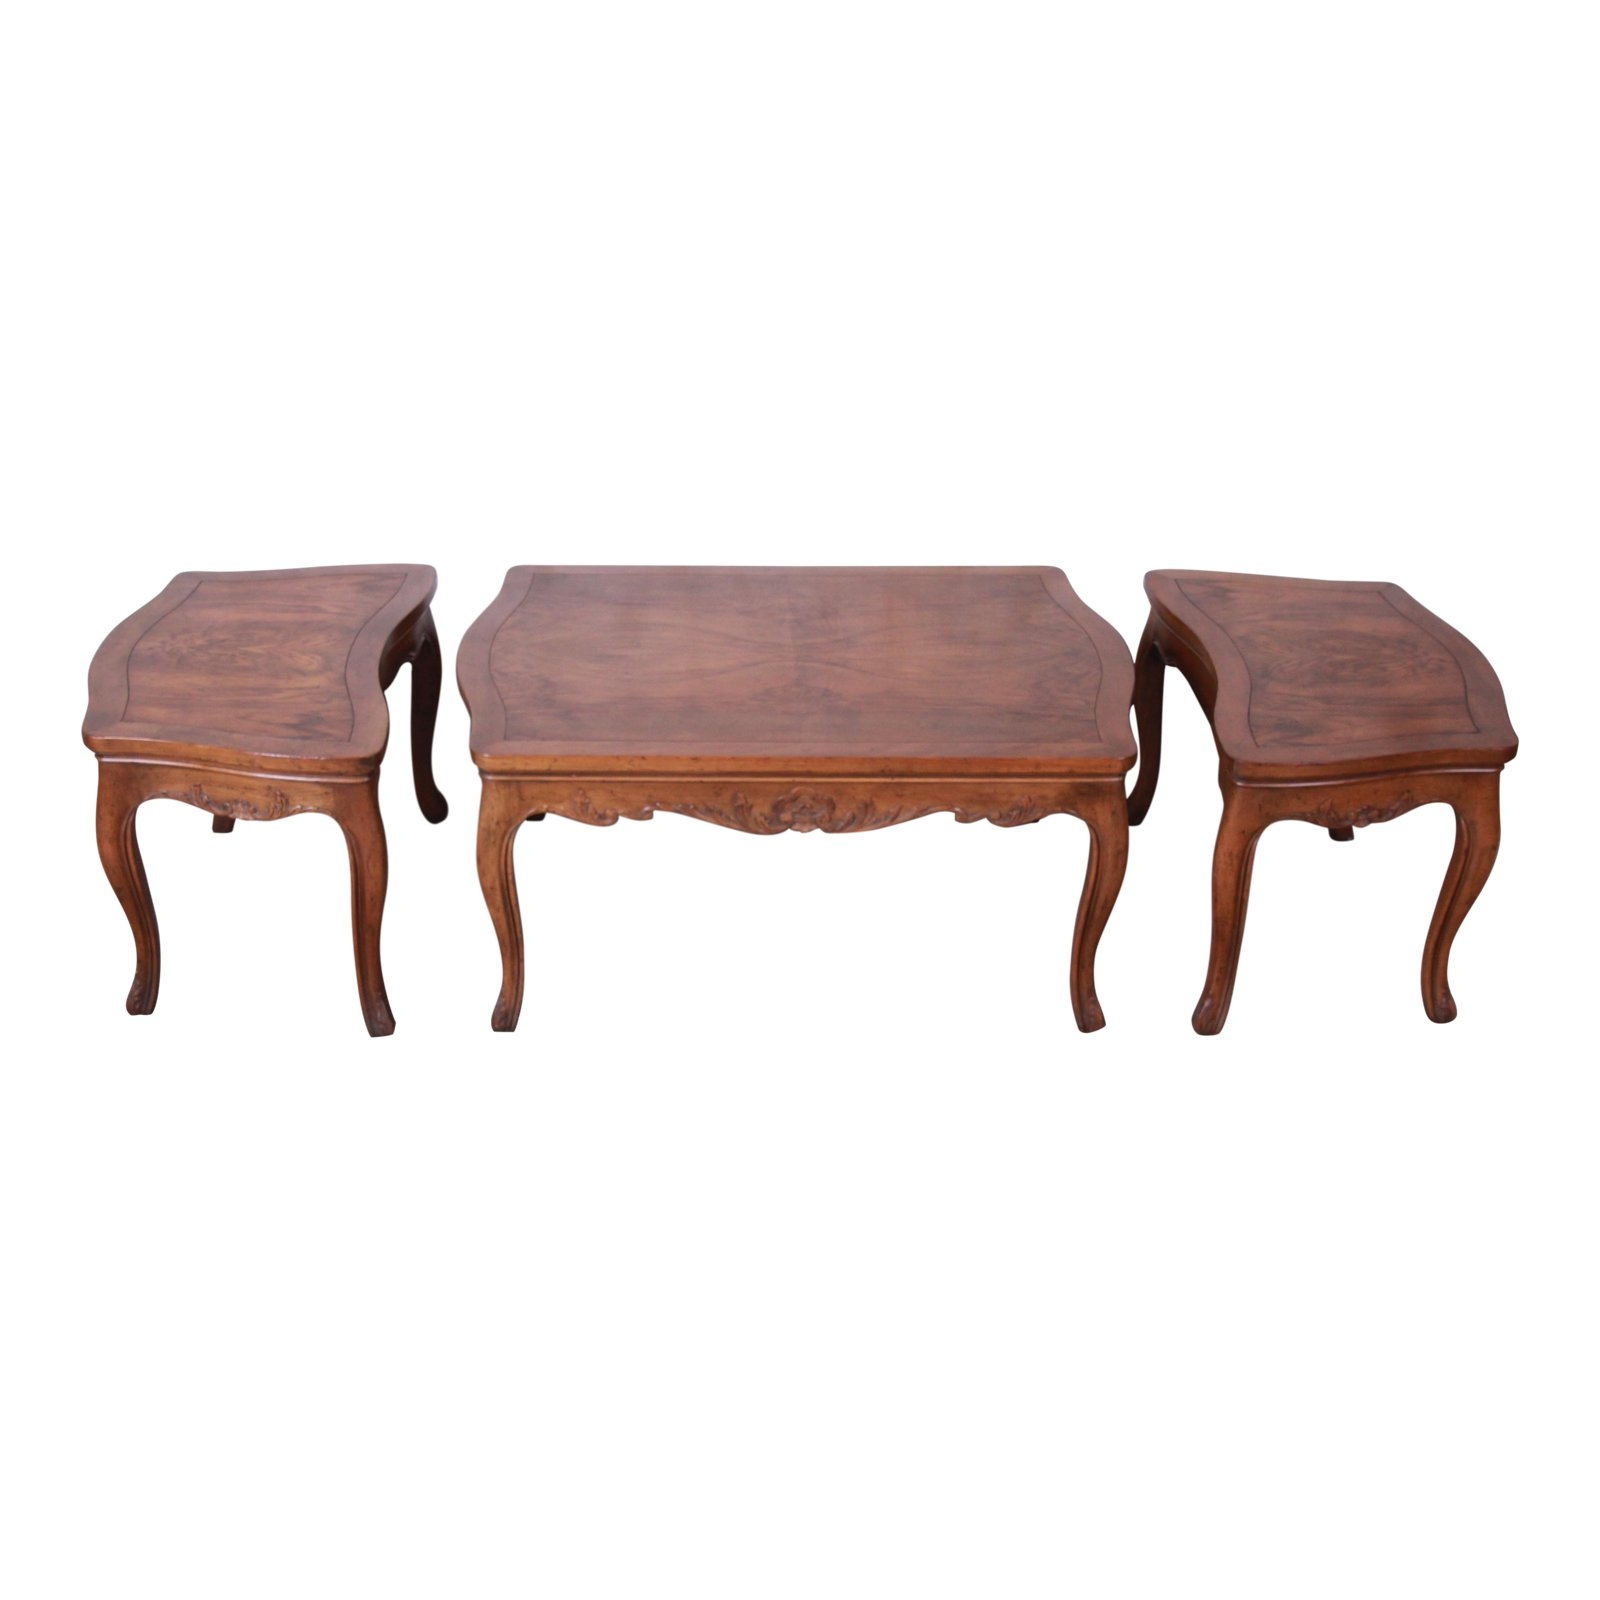 baker furniture french carved burl wood coffee table and end tables piece set accent small entryway round mosaic outdoor glass sets white crystal lamp yellow oval tablecloth leg